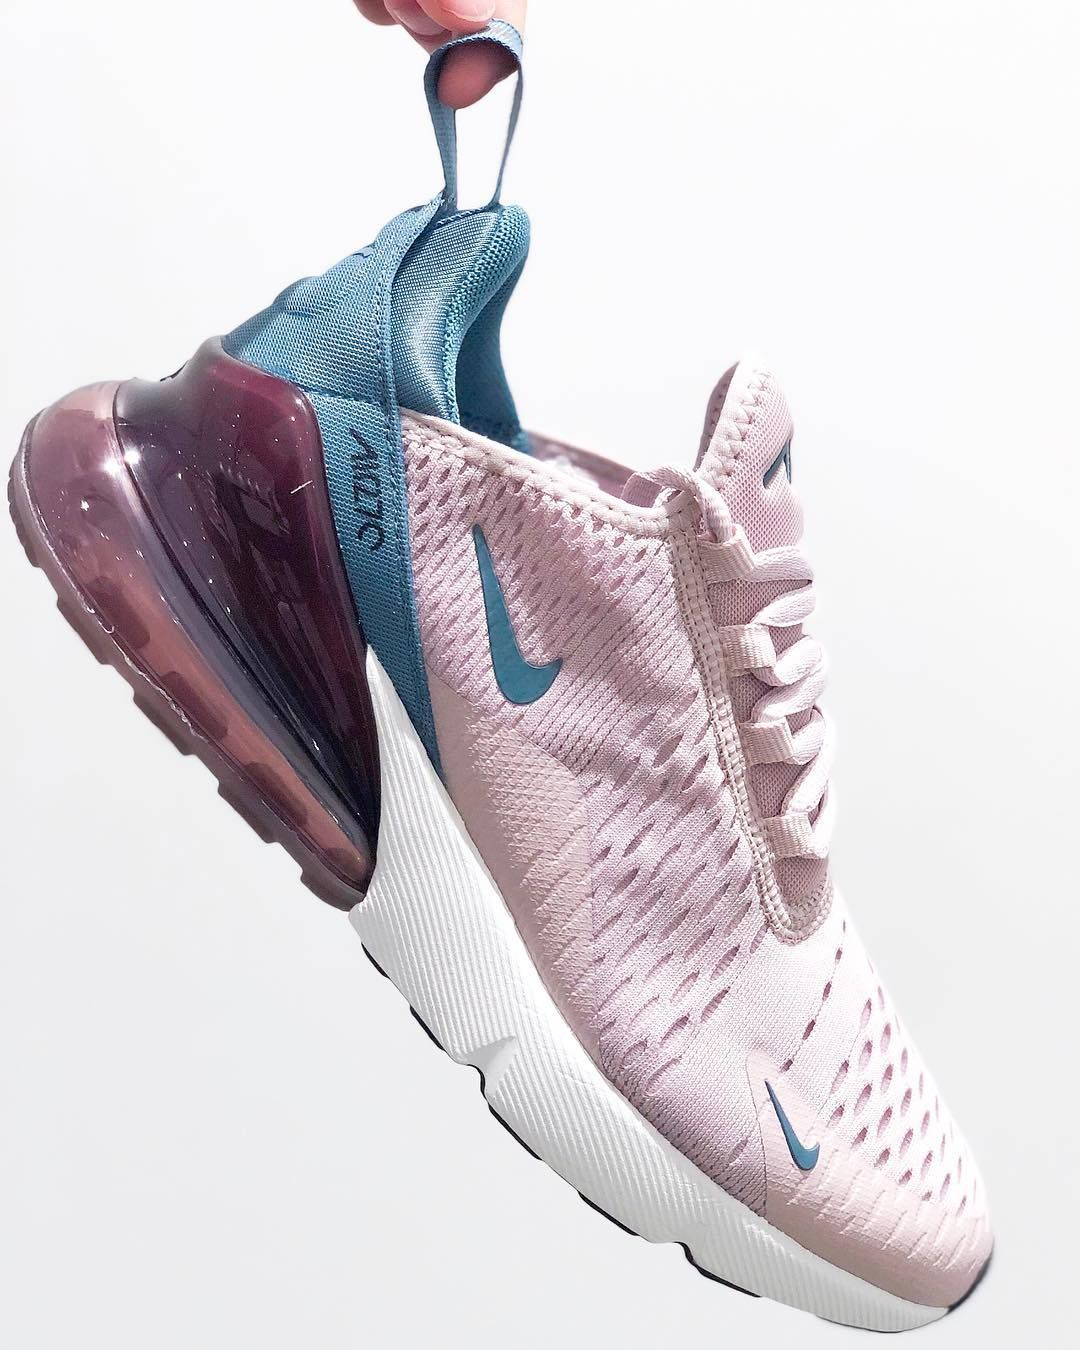 sale retailer 8968c 61ad1 The new Nike Air Max 270 Women s Shoe is inspired by two icons of big Air   the Air Max 180 and Air Max 93. It features Nike s biggest heel Air unit  yet ...